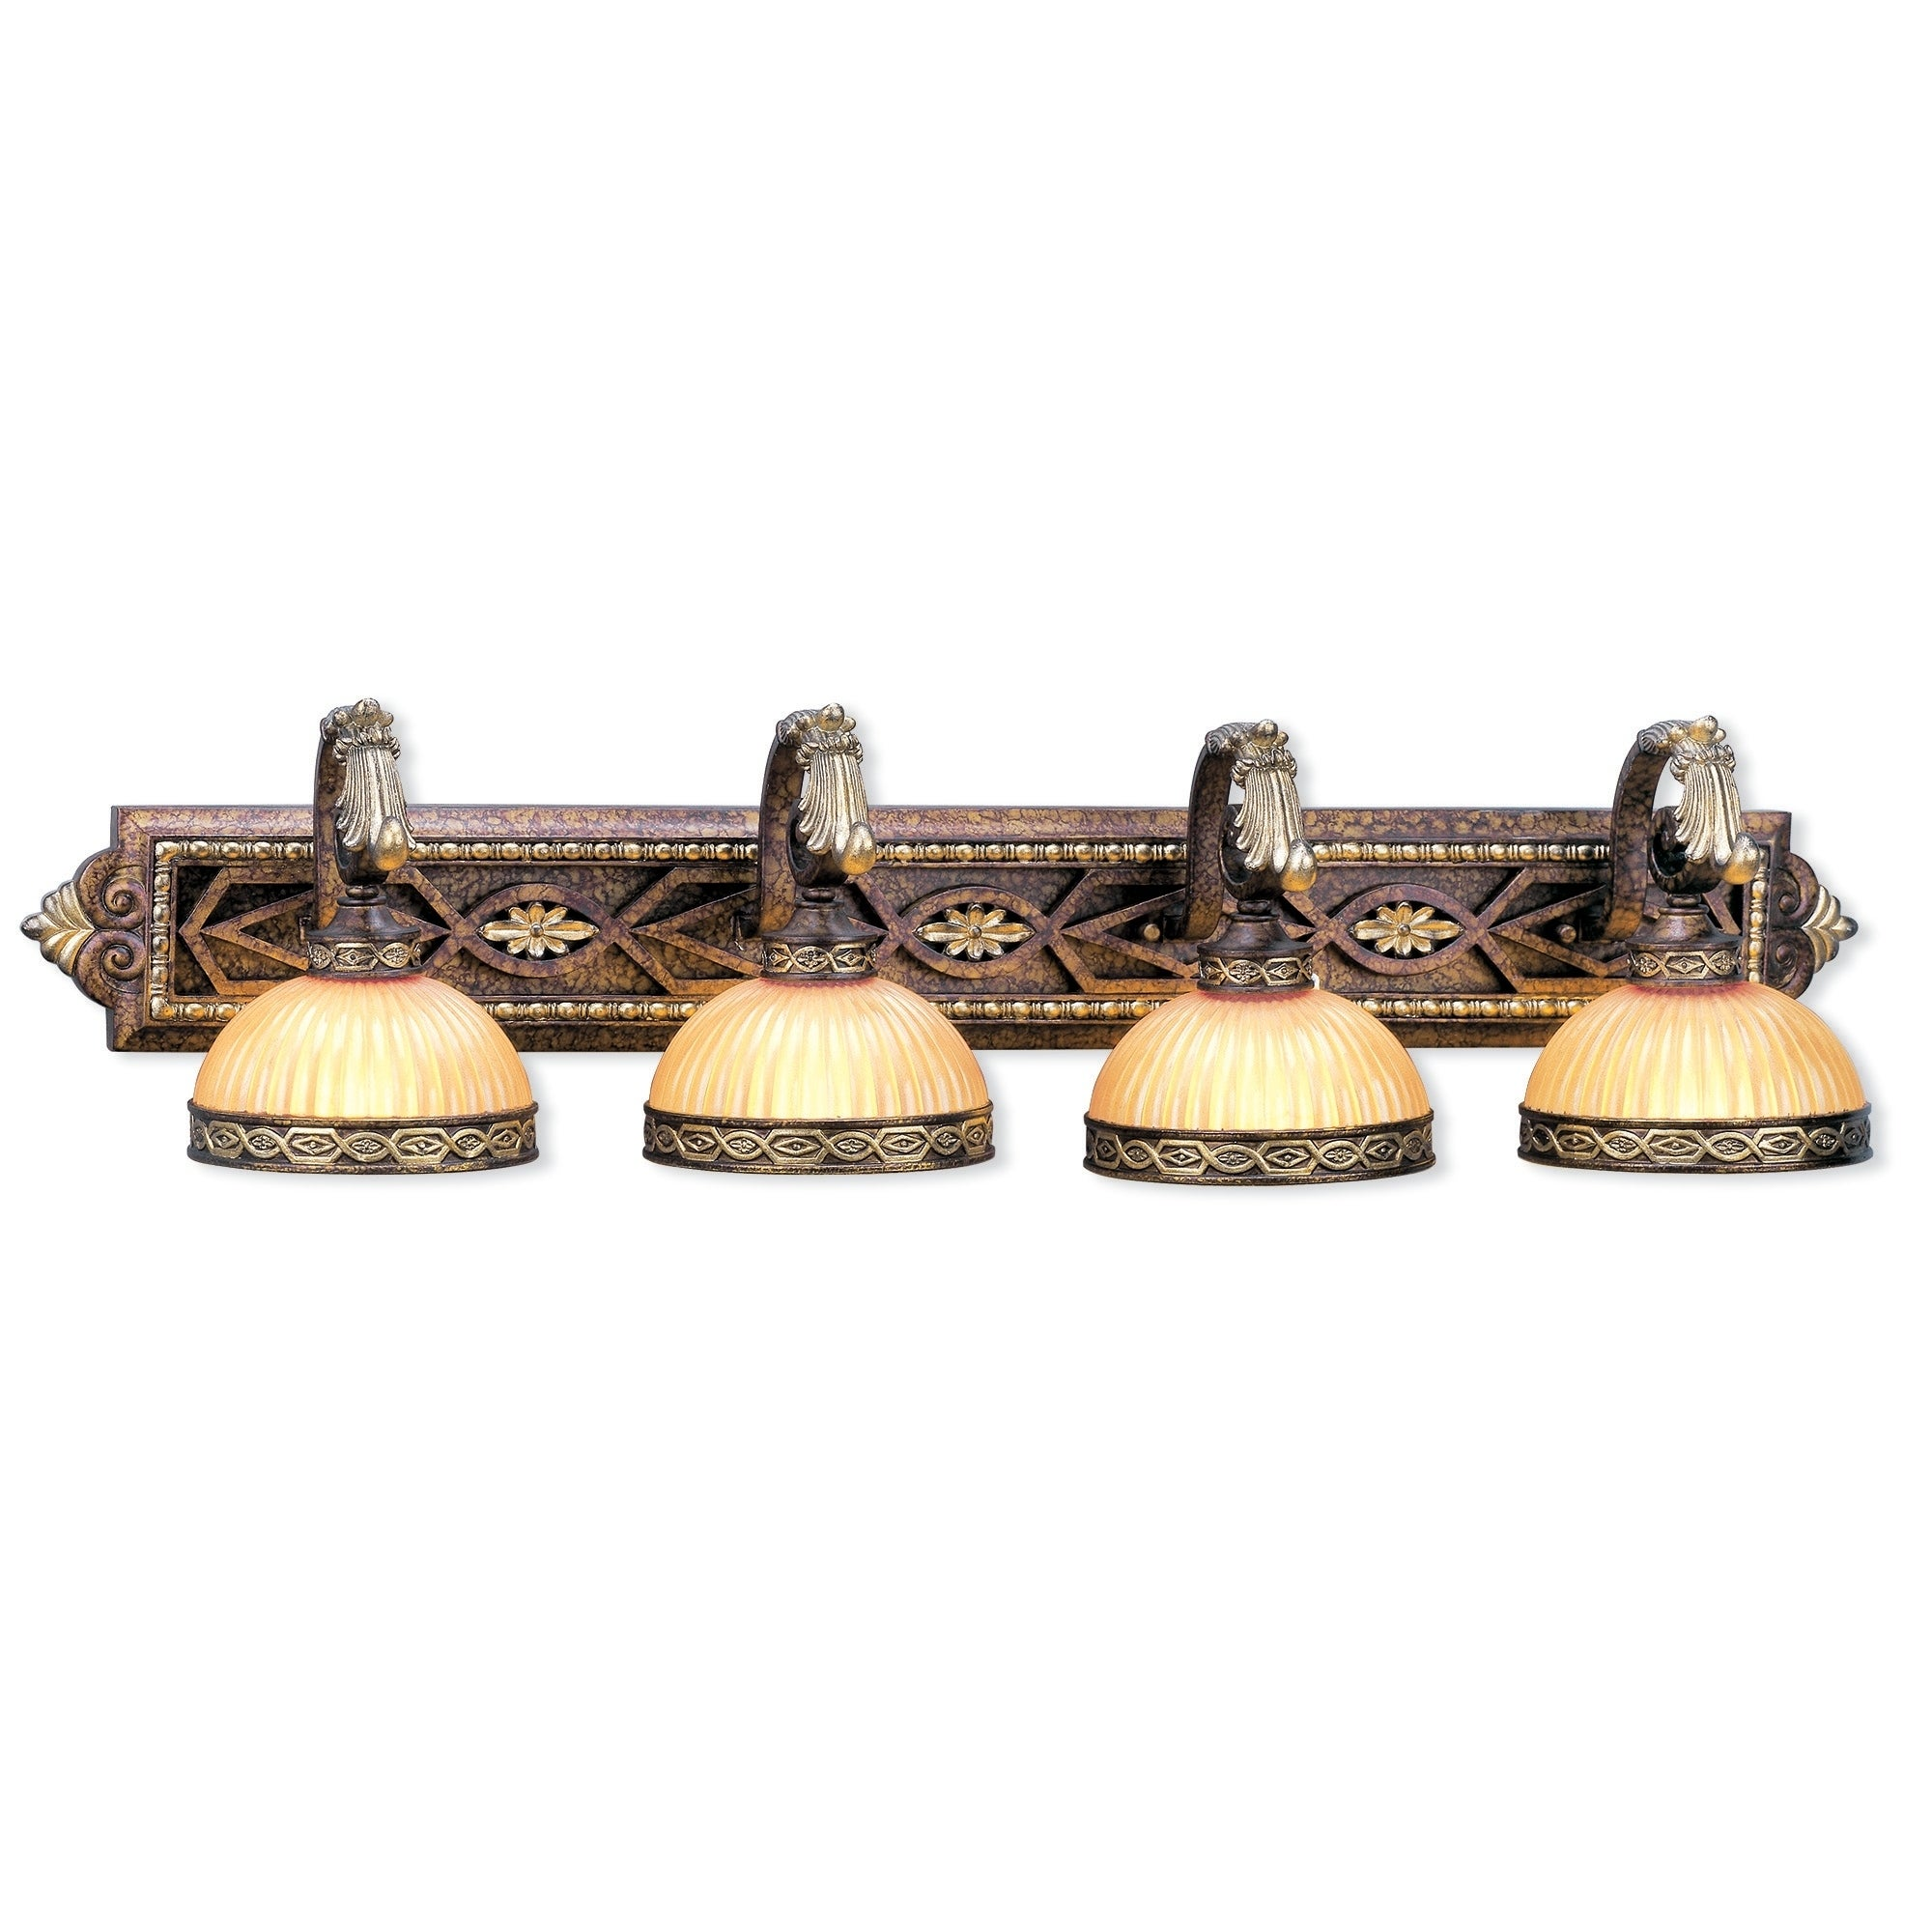 Livex Lighting Seville 4 Light Palacial Bronze With Gilded Accents Bath Vanity Overstock 26170054